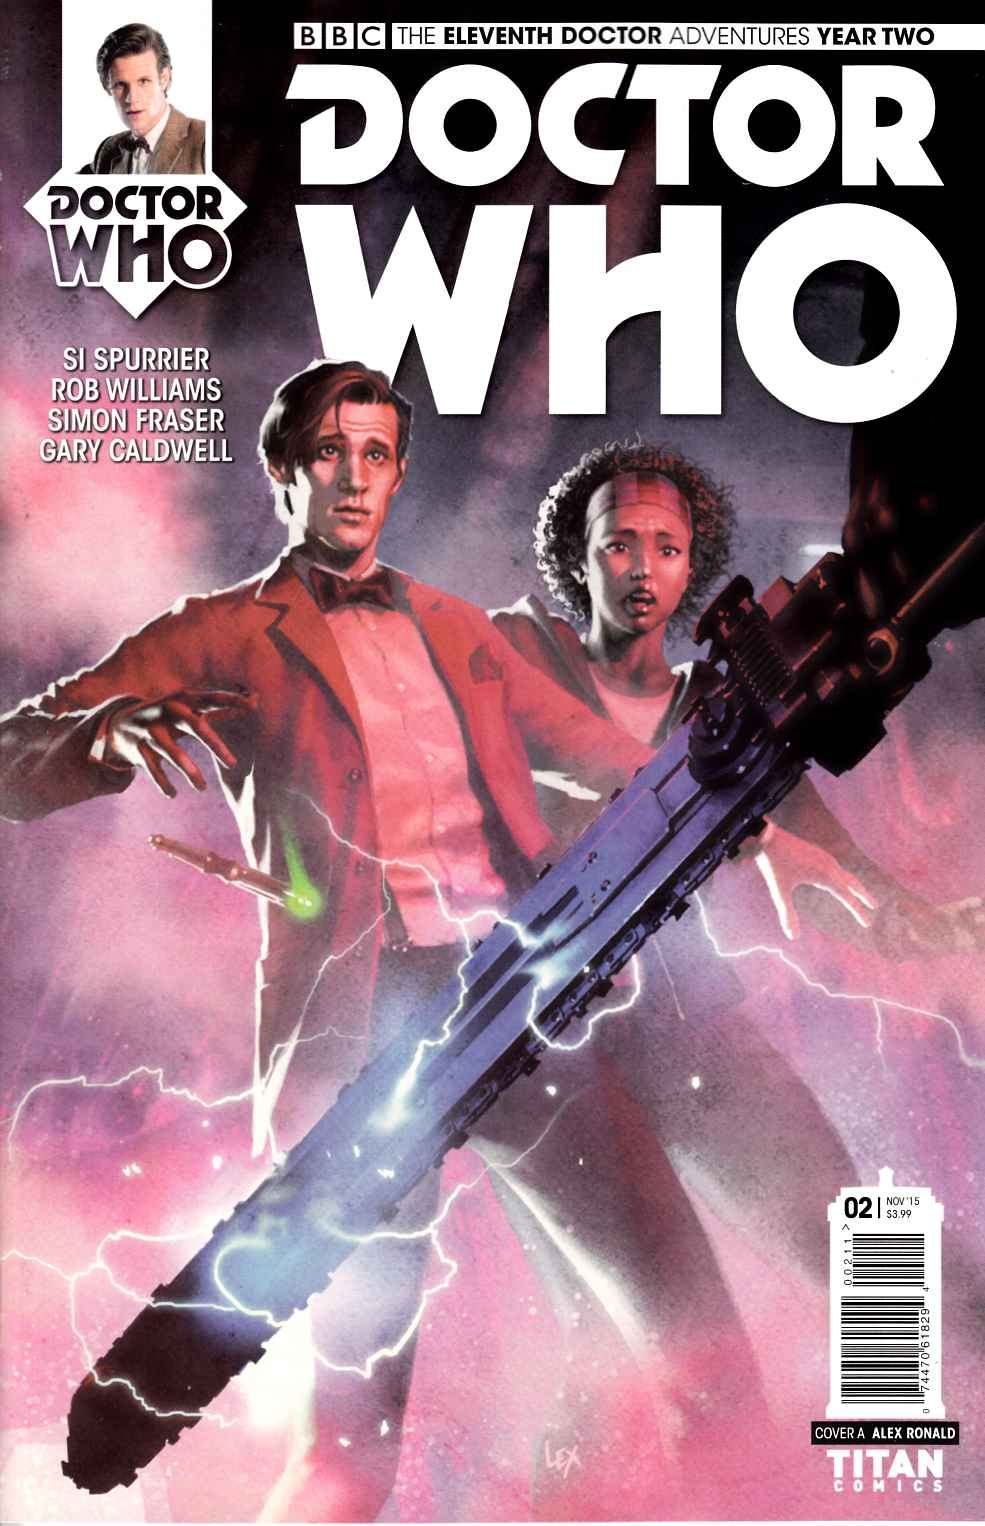 Doctor Who 11th Doctor Year 2 #2 [Titan Comic] THUMBNAIL